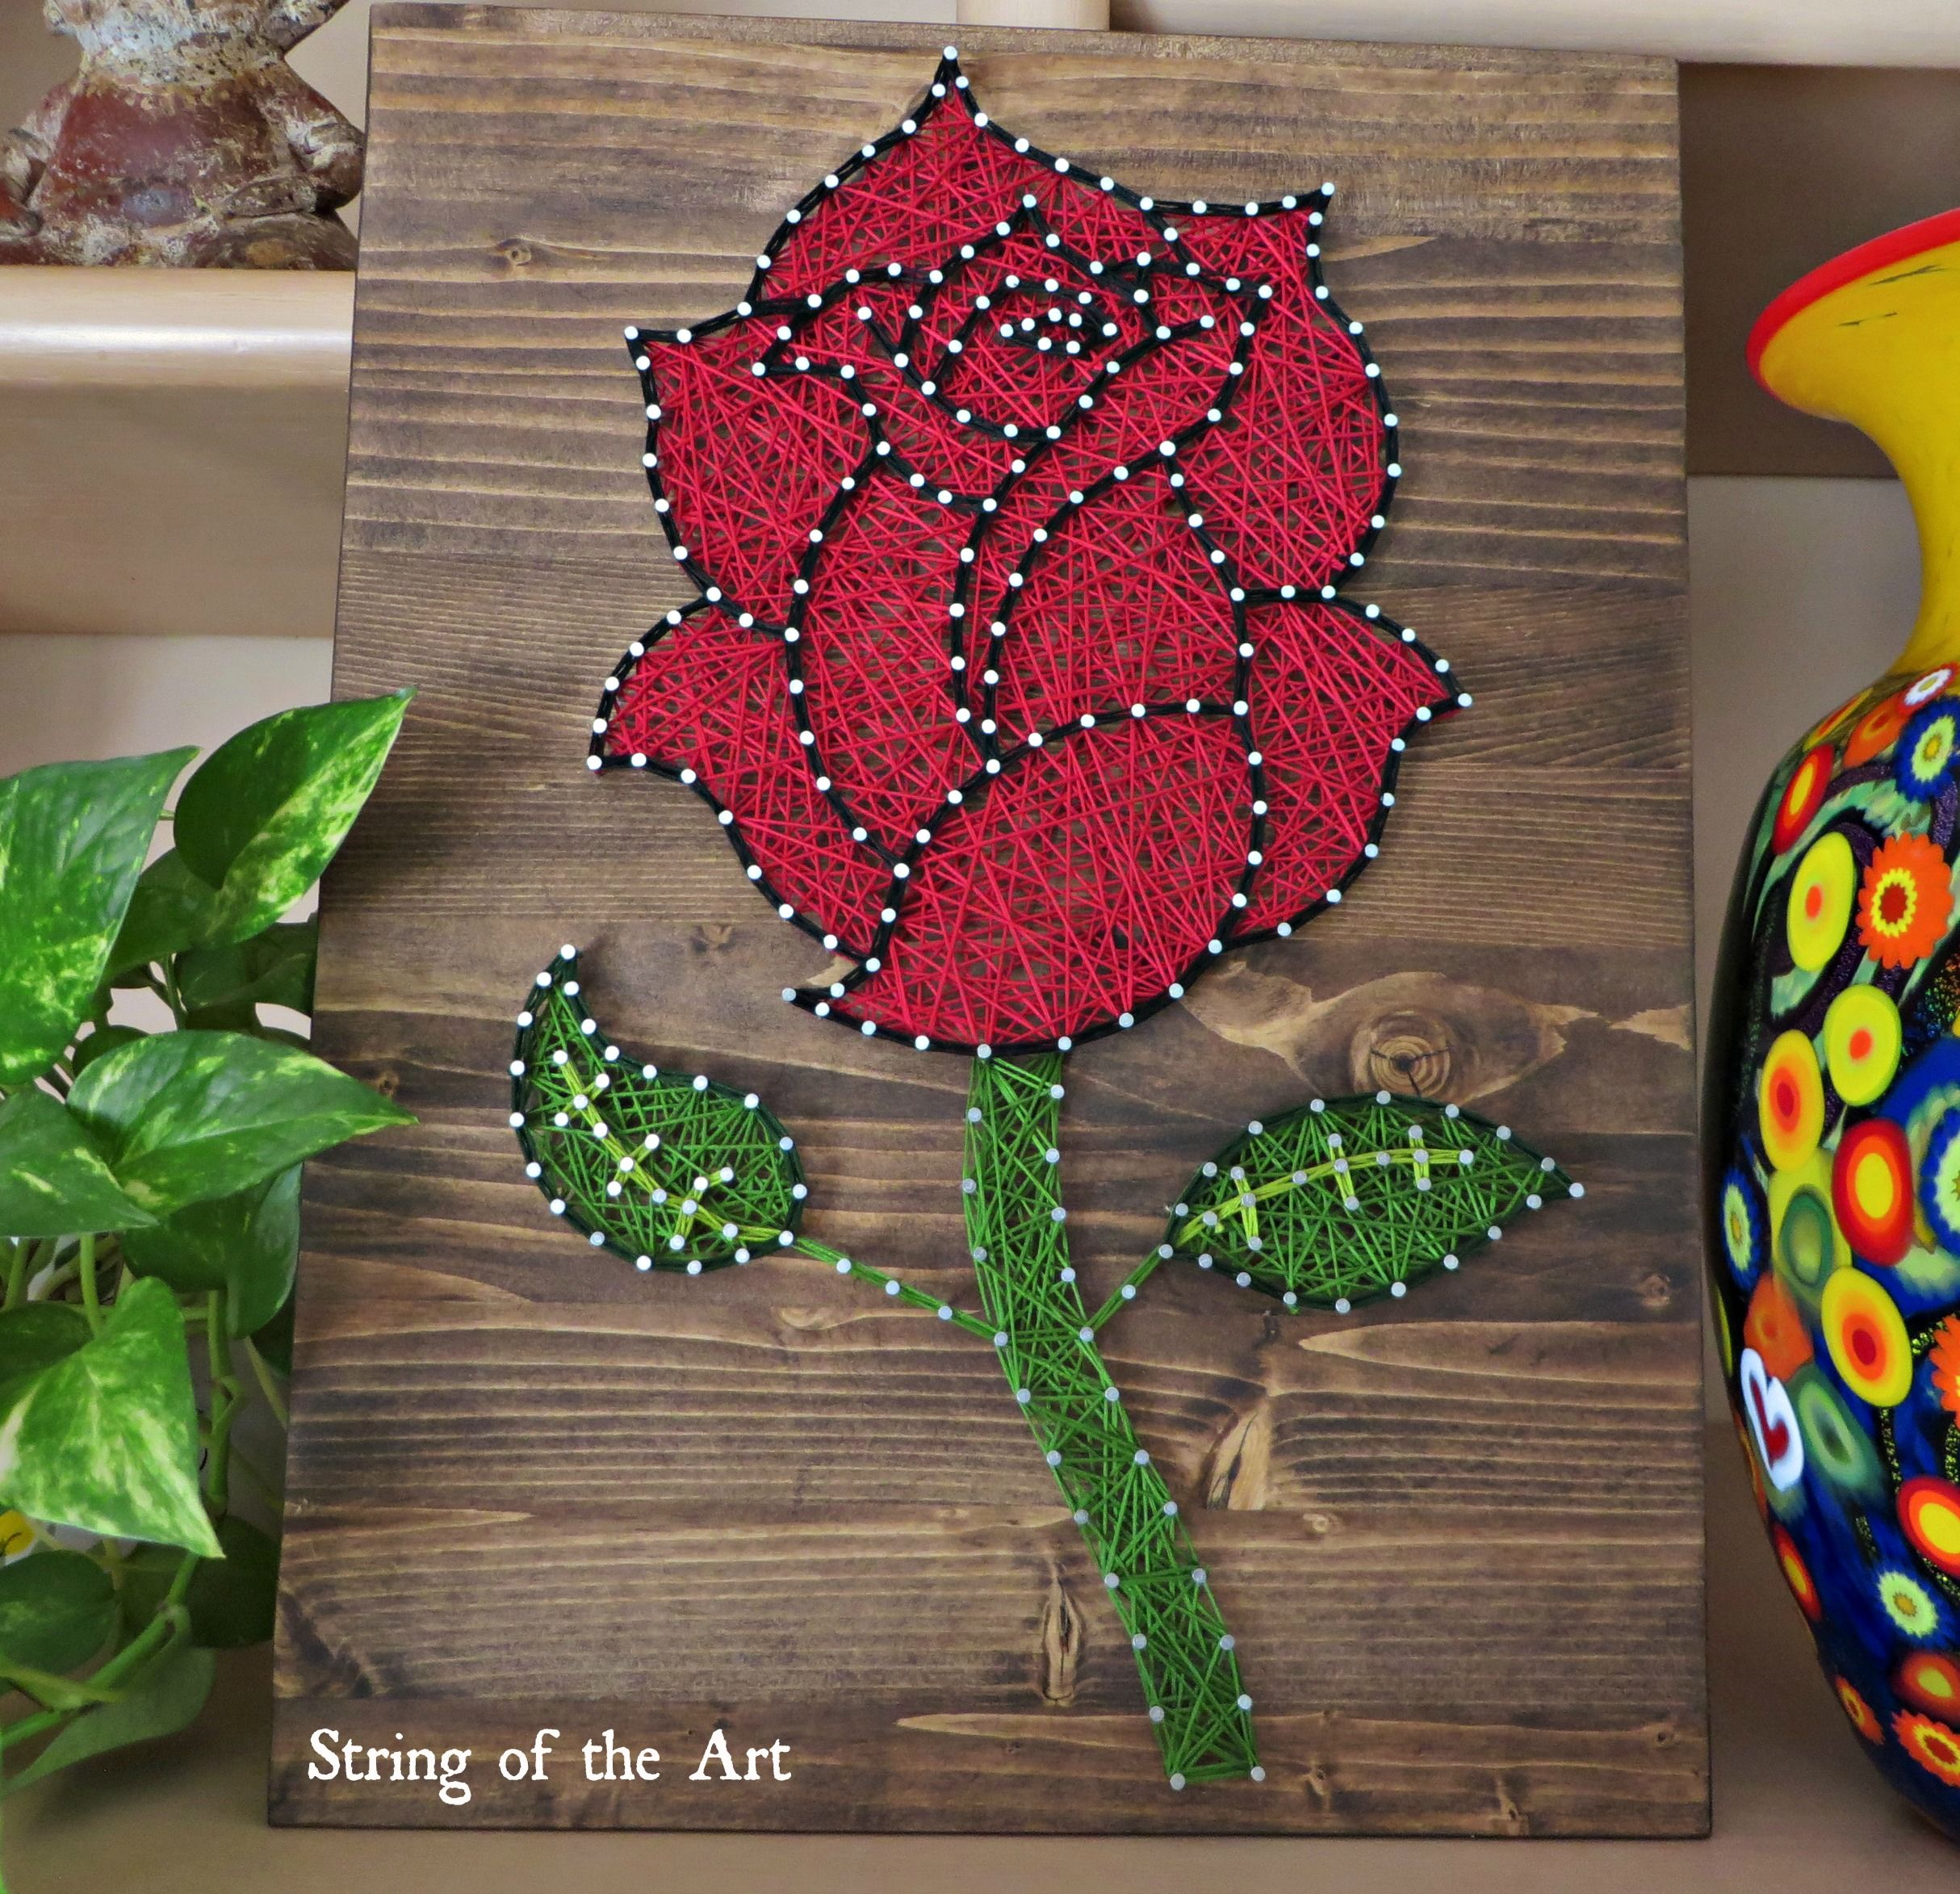 Uncategorized String Art Balloons diy string art kit rose crafts decor w pattern nails instructions staine